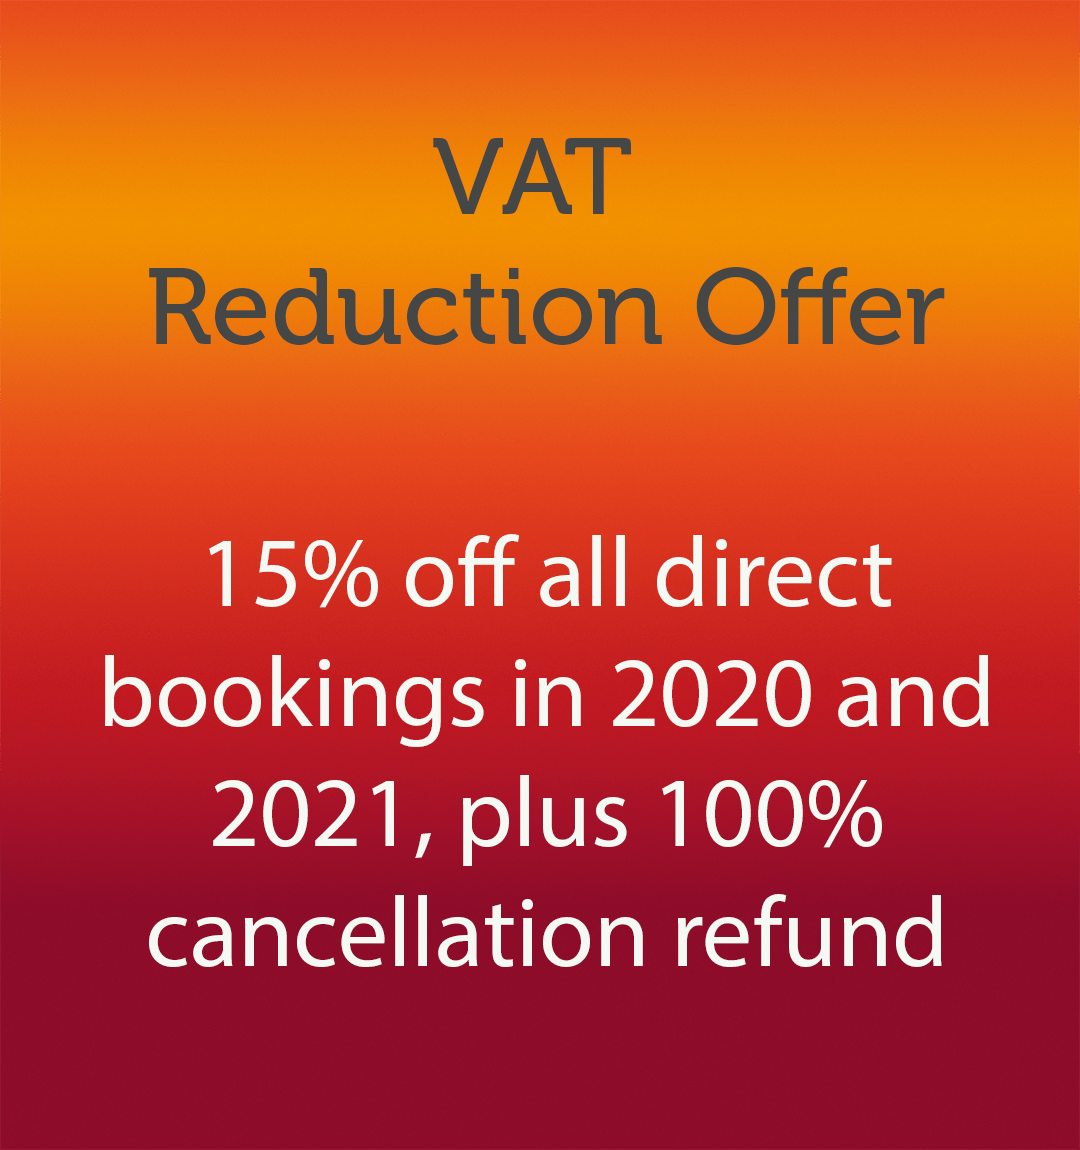 Vat Reduction Offer